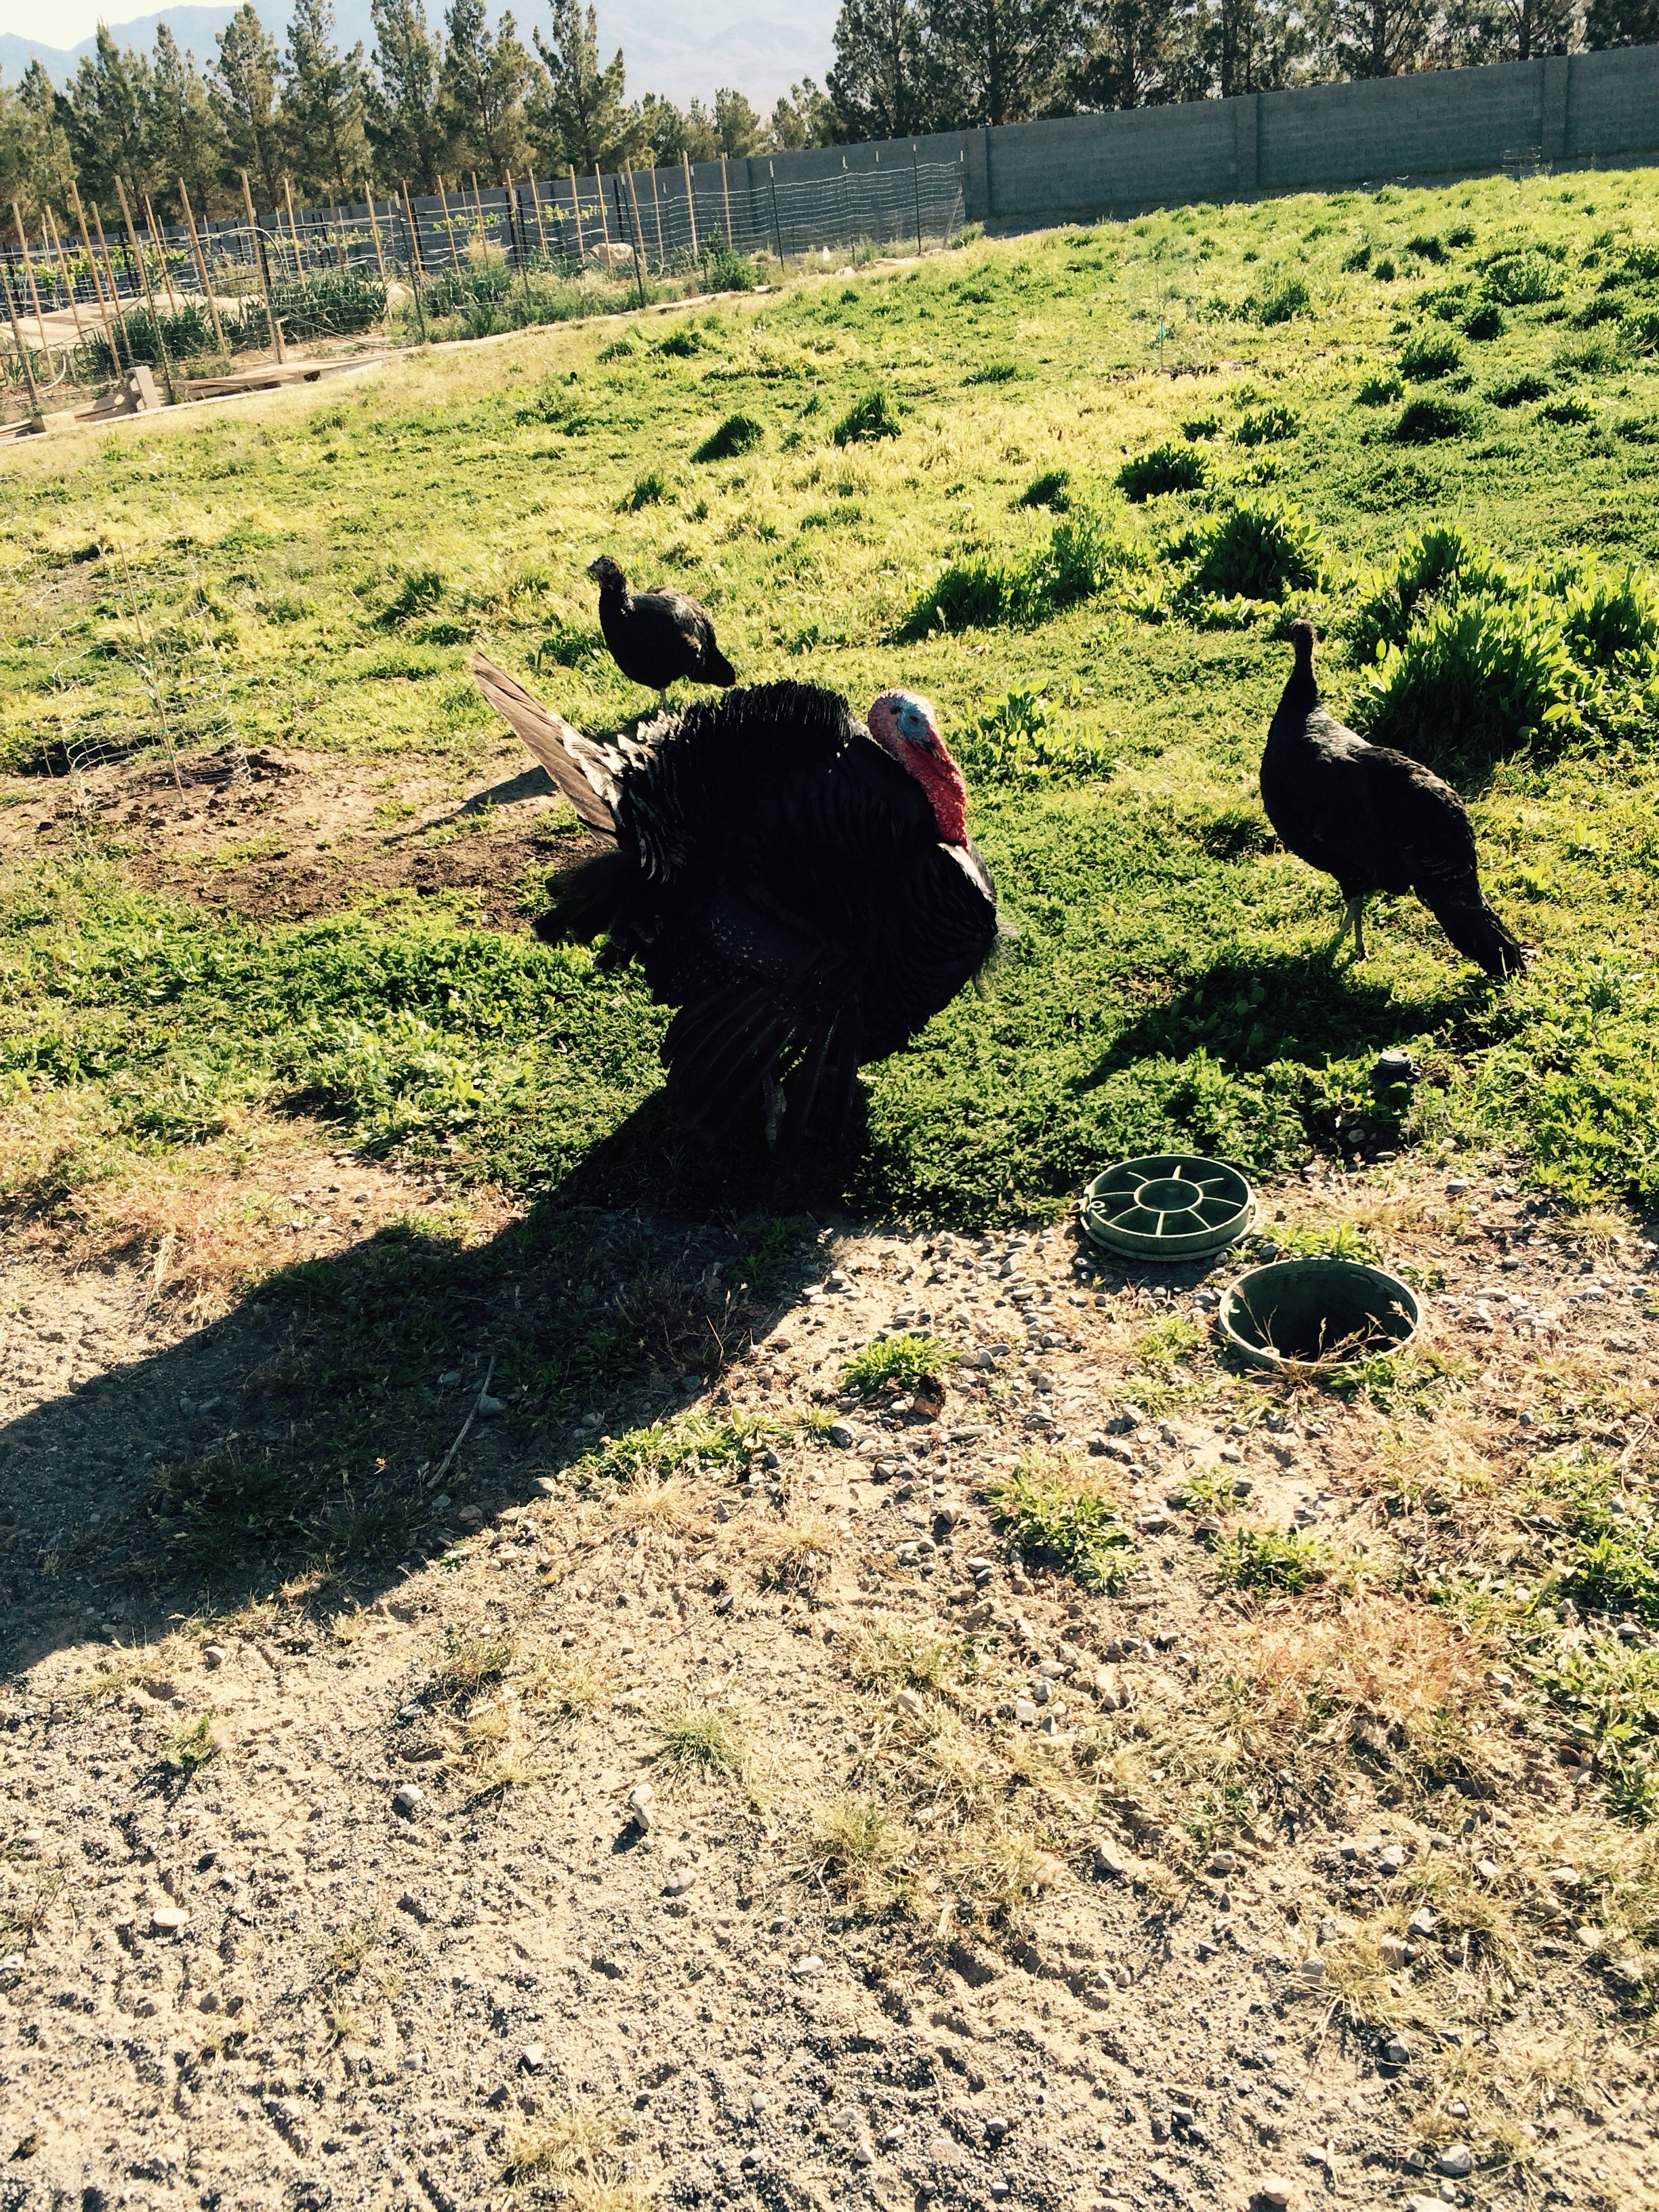 They are enjoying the organic chicken omega three pasture